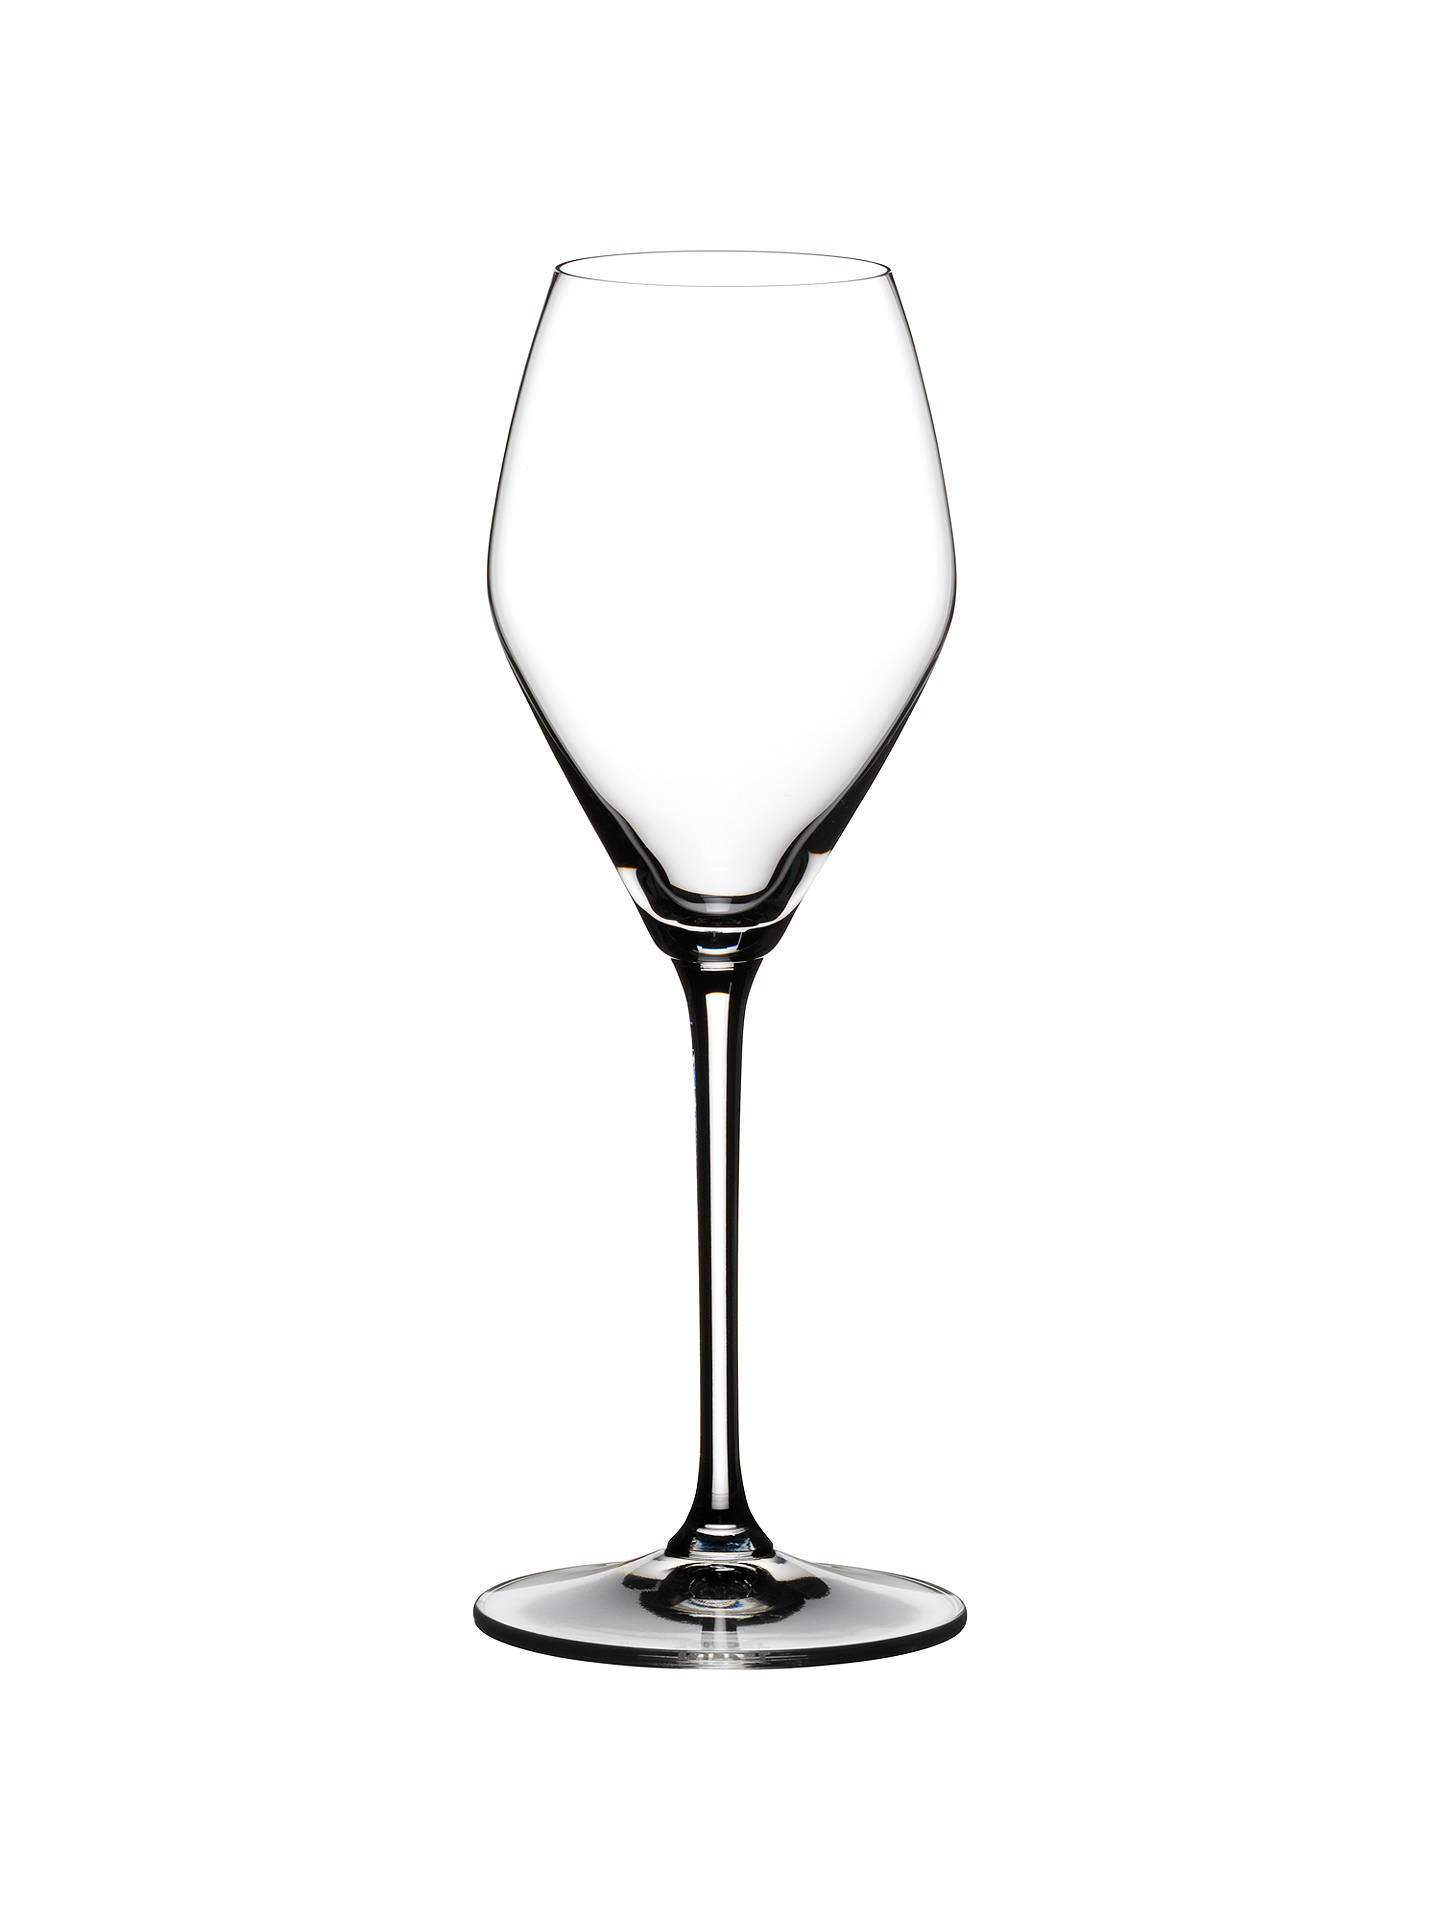 BuyRiedel See Smell Taste Champagne / Rosé Crystal Wine Glass, Set of 2, 322ml, Clear Online at johnlewis.com